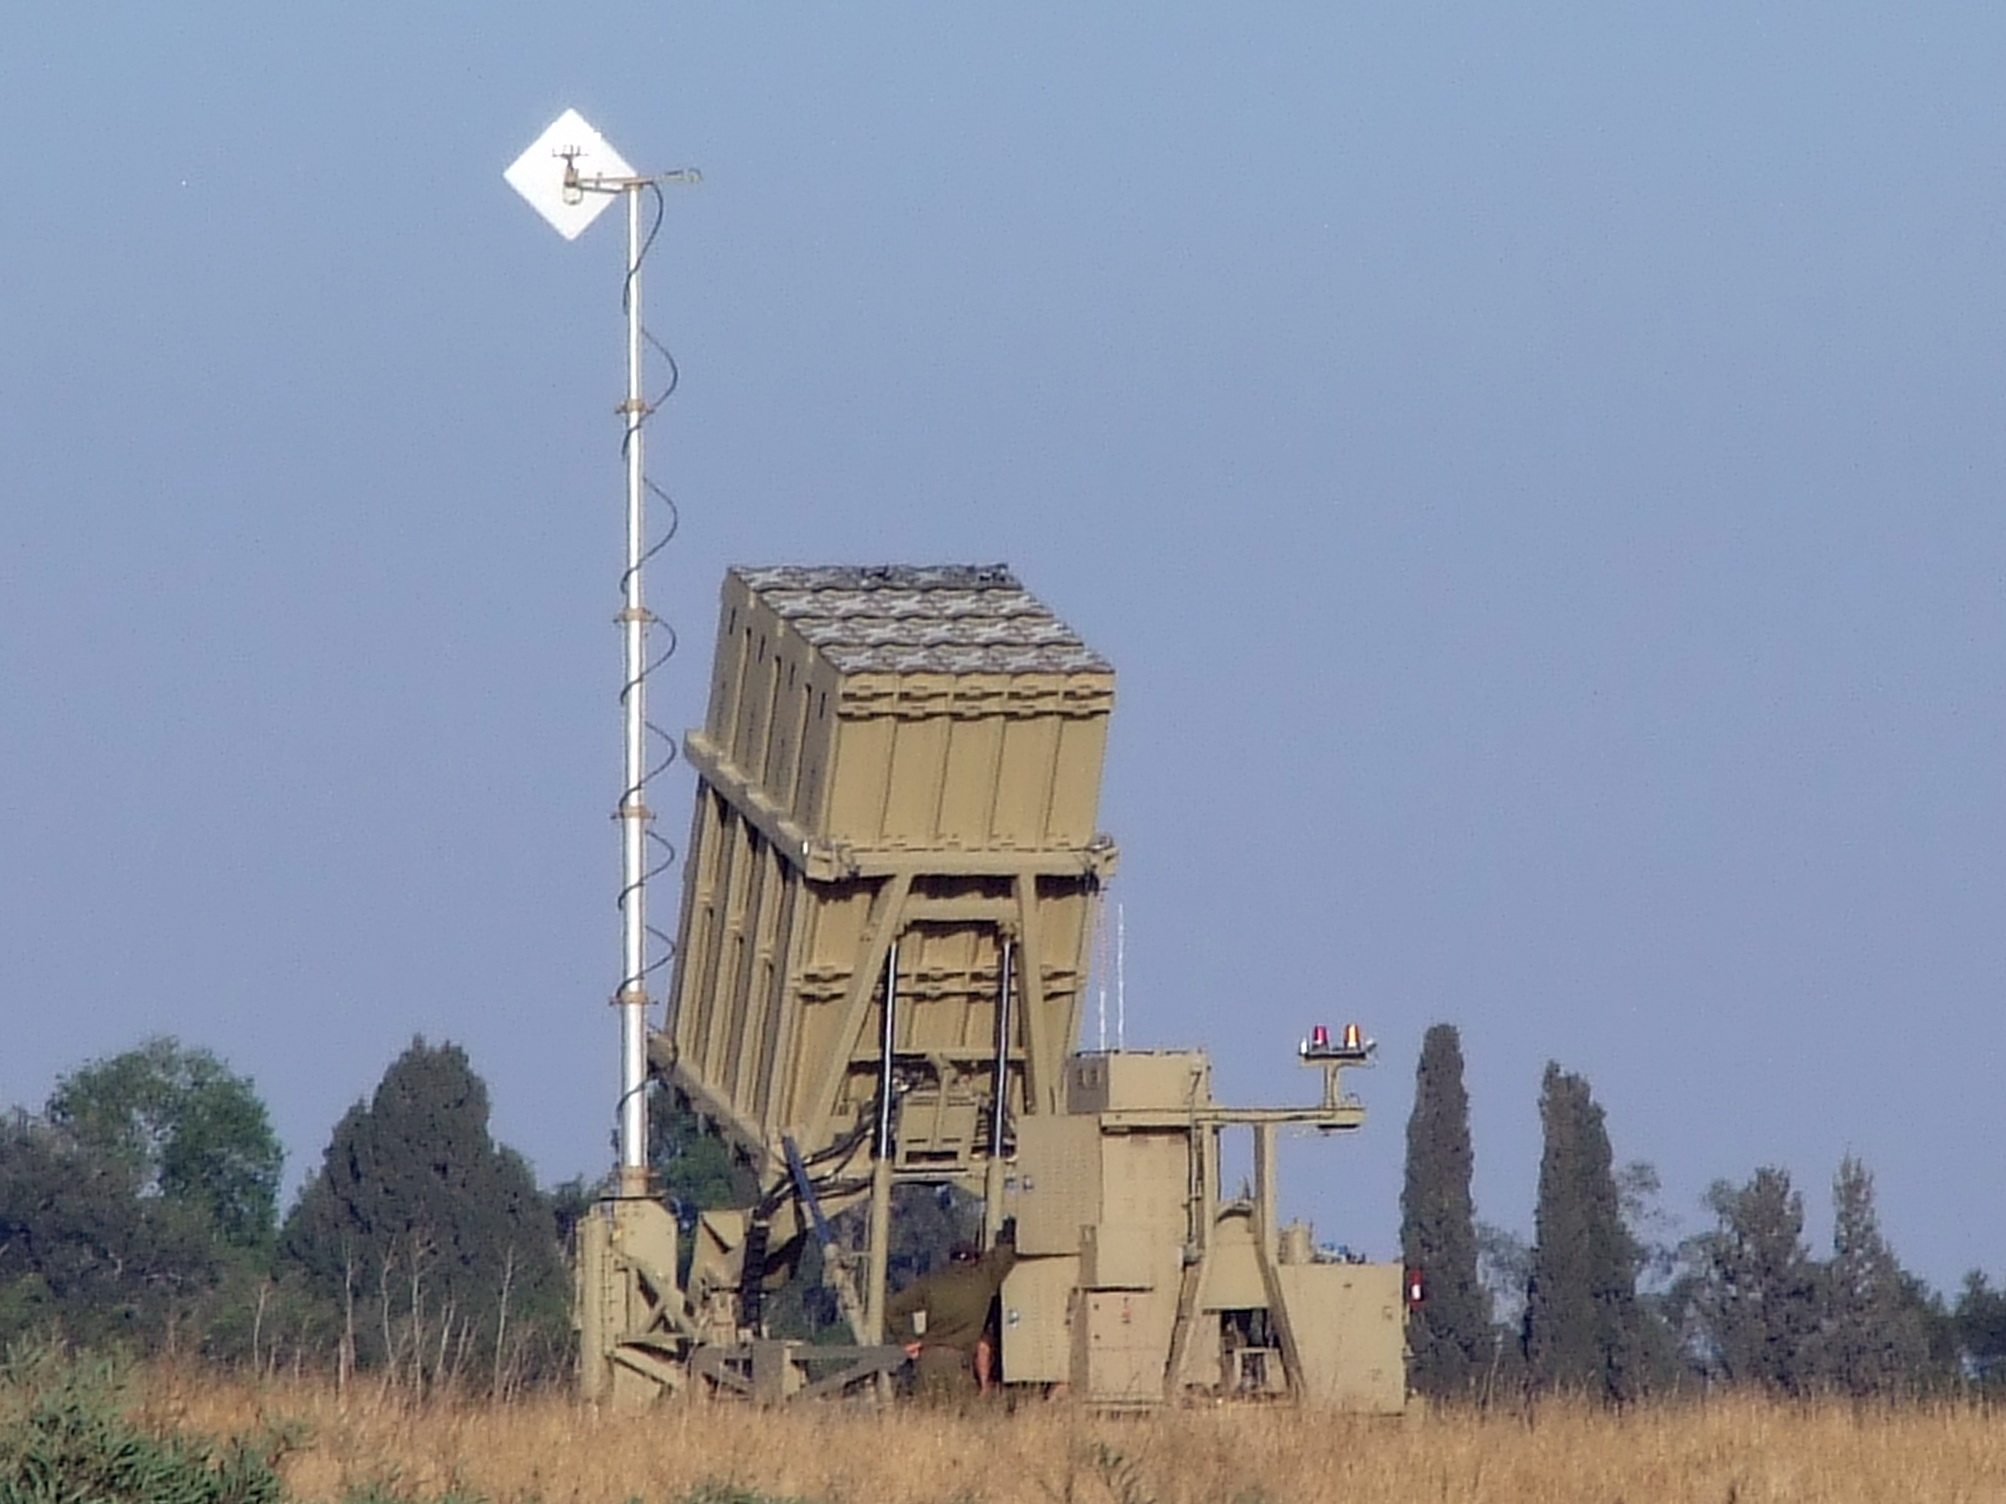 """The Israeli Iron Dome system, whose battery in Sderot is pictured, made its first successful rocket interception in Eilat. The Palestinian terrorist group behind the attack said afterward that Eilat """"will never enjoy security."""" Credit: NatanFlayer via Wikimedia Commons."""